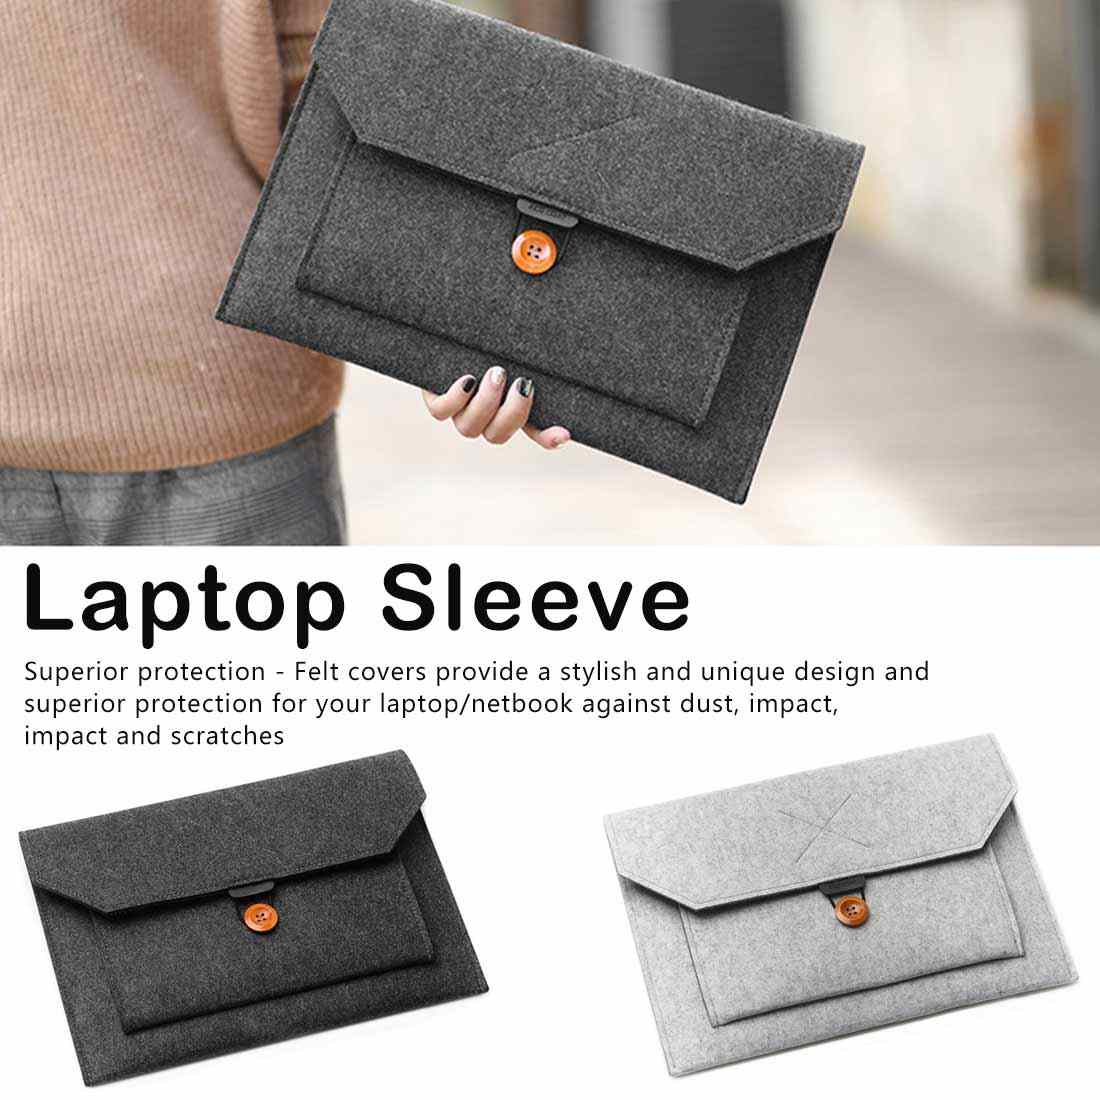 Mode laine feutre sac à main sac pour ordinateur portable ordinateur portable pour Macbook Air Pro 12 13.3 14 Lenovo Asus ordinateur portable hp Liner sac